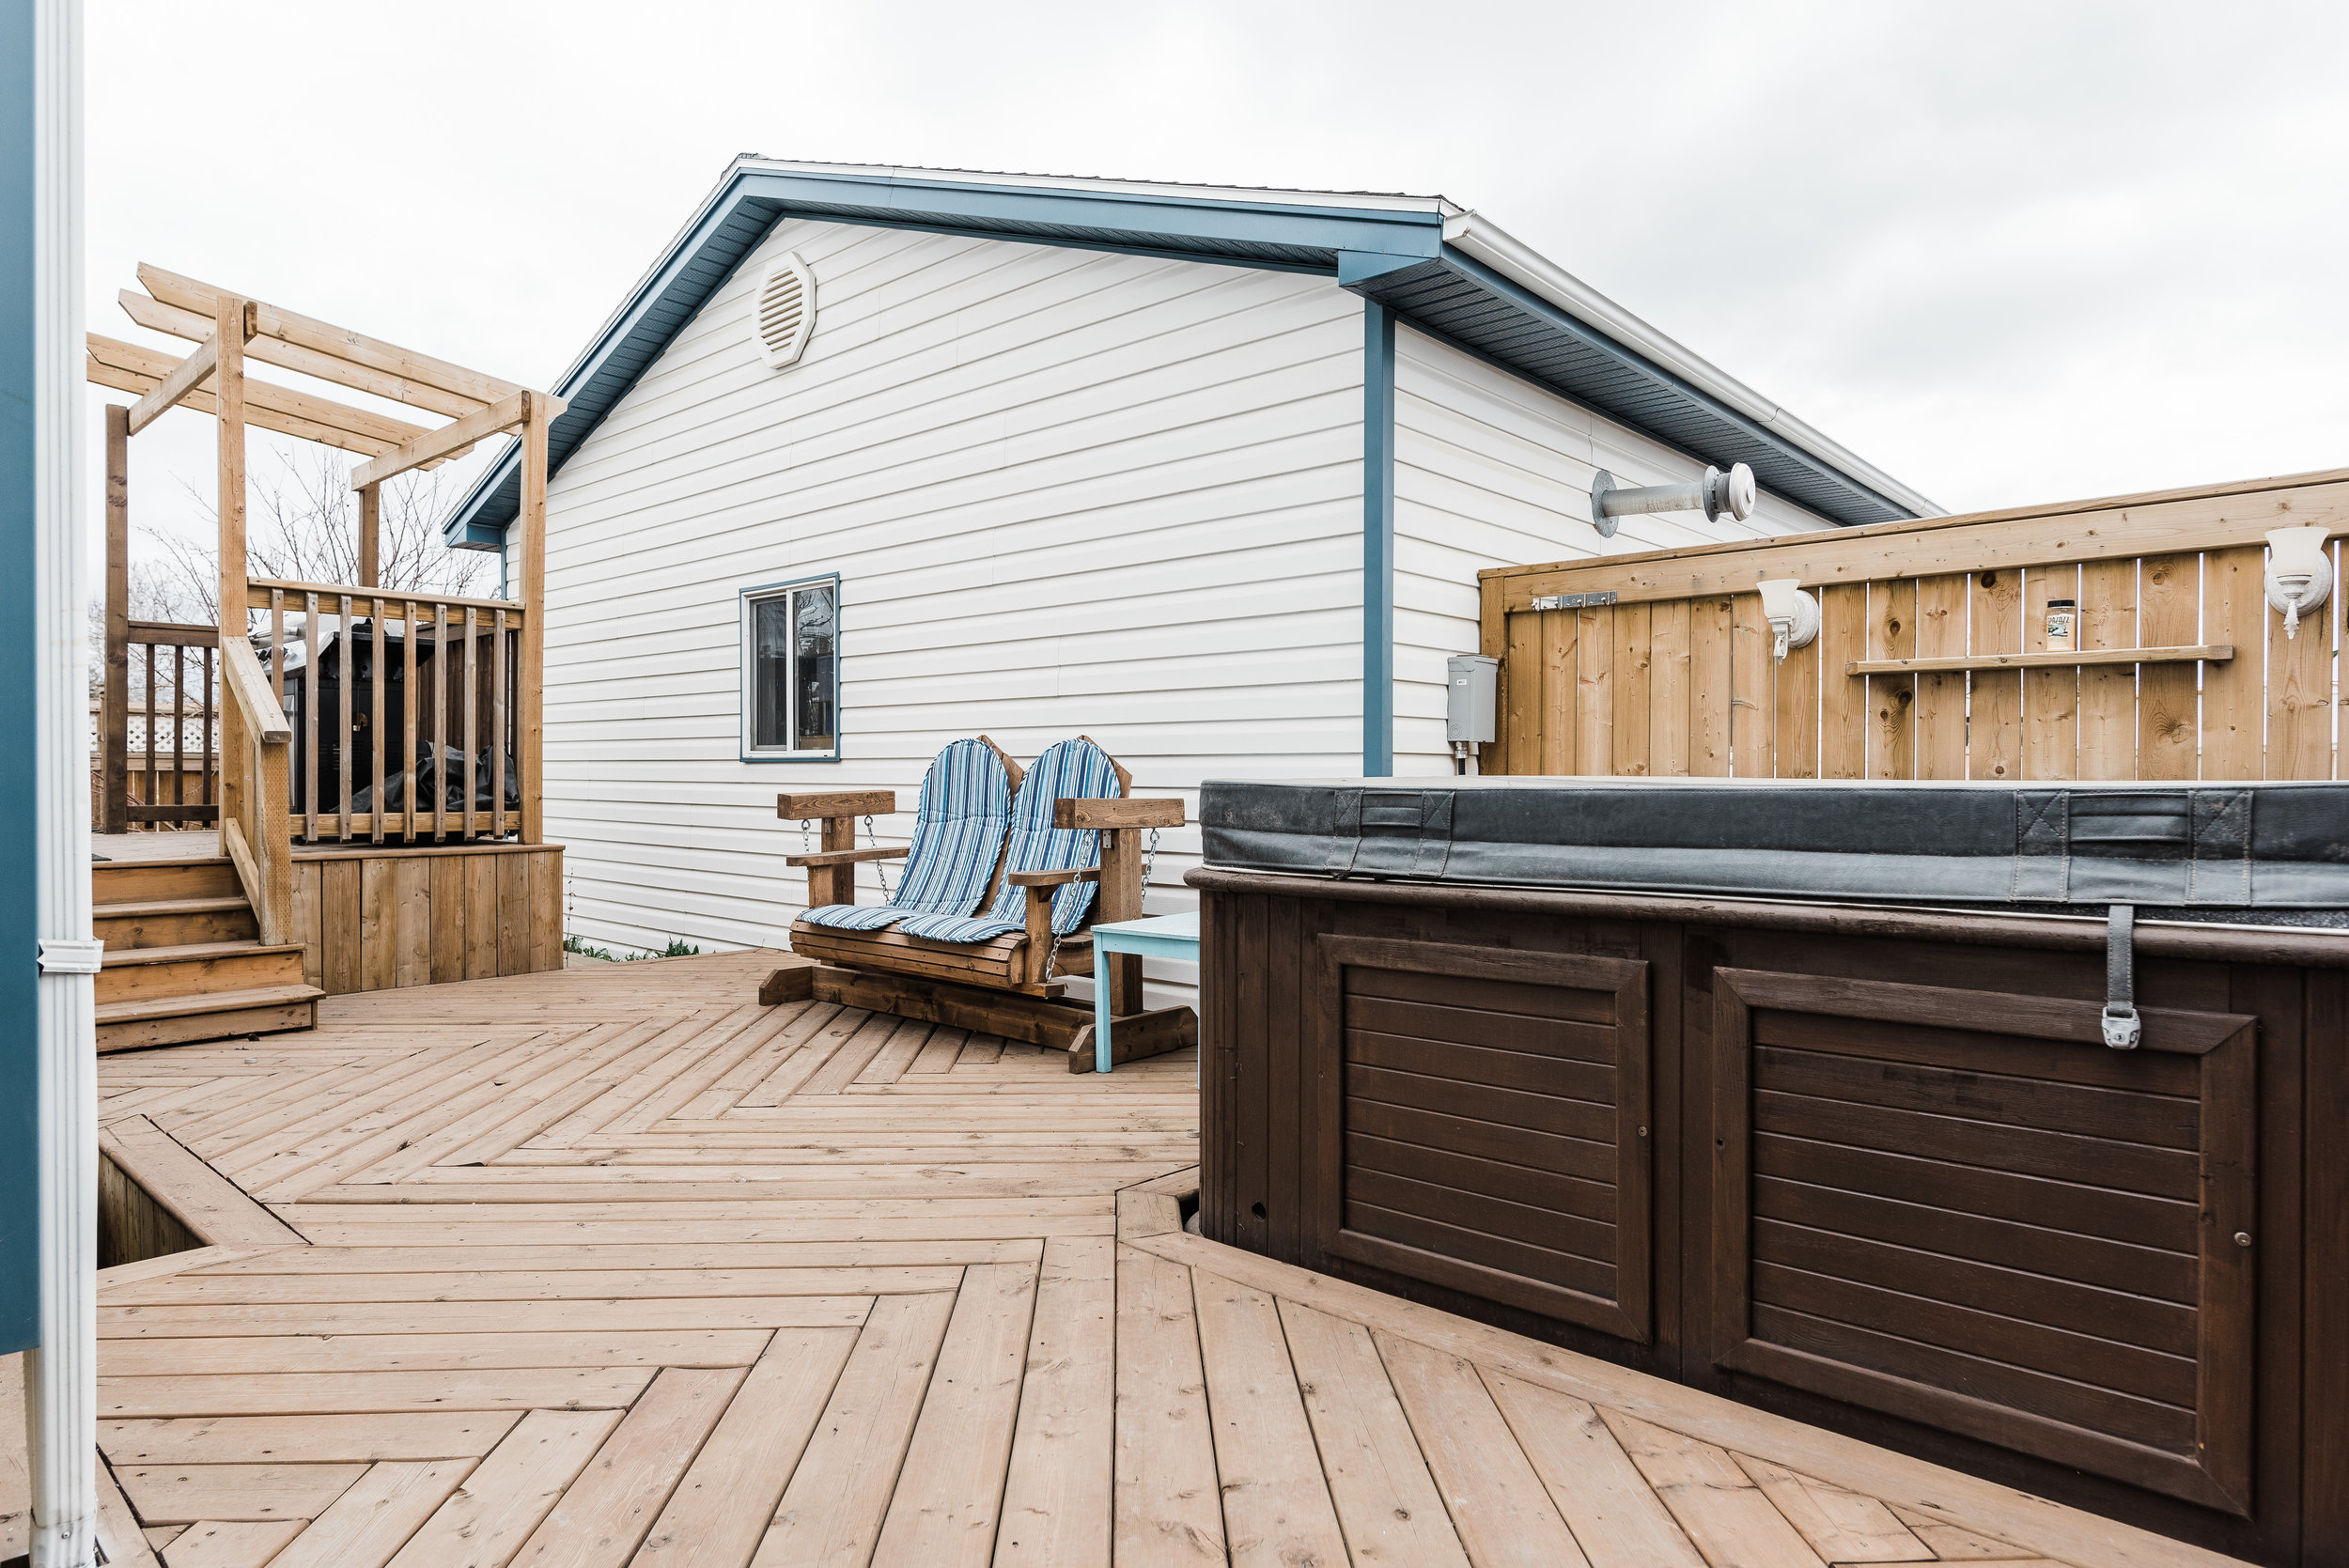 100 tundra drive - 2 Storey 1,600+ sq/ft Home | ThickwoodAsking $505,000.00 - Available for Viewing